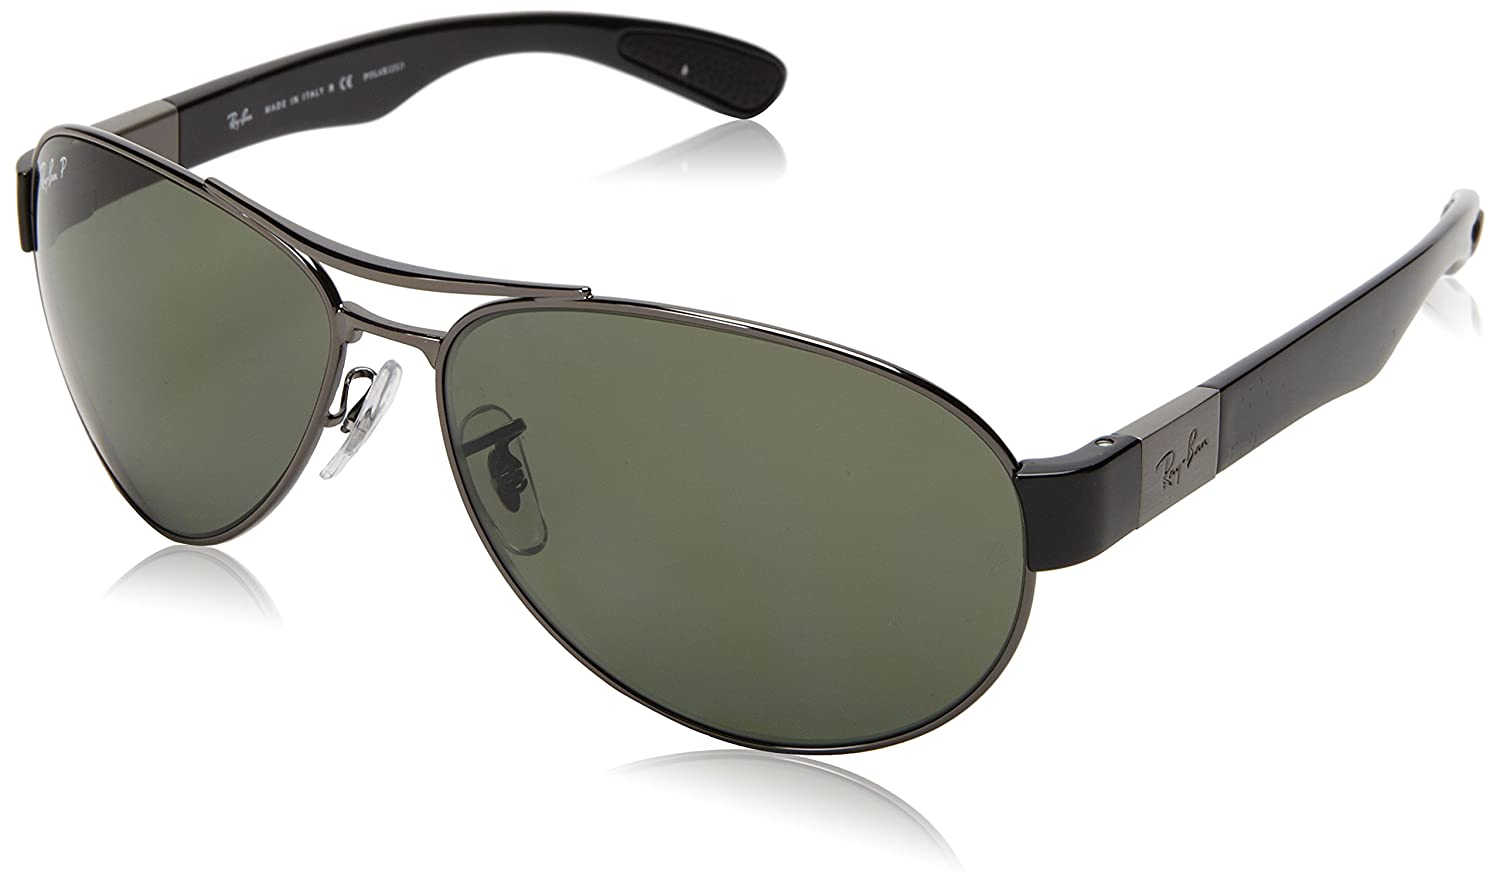 e3e0792d5e Amazon.com  Ray-Ban RB3509 - GUNMETAL Frame POLAR GREEN Lenses 63mm  Polarized  Ray-Ban  Clothing